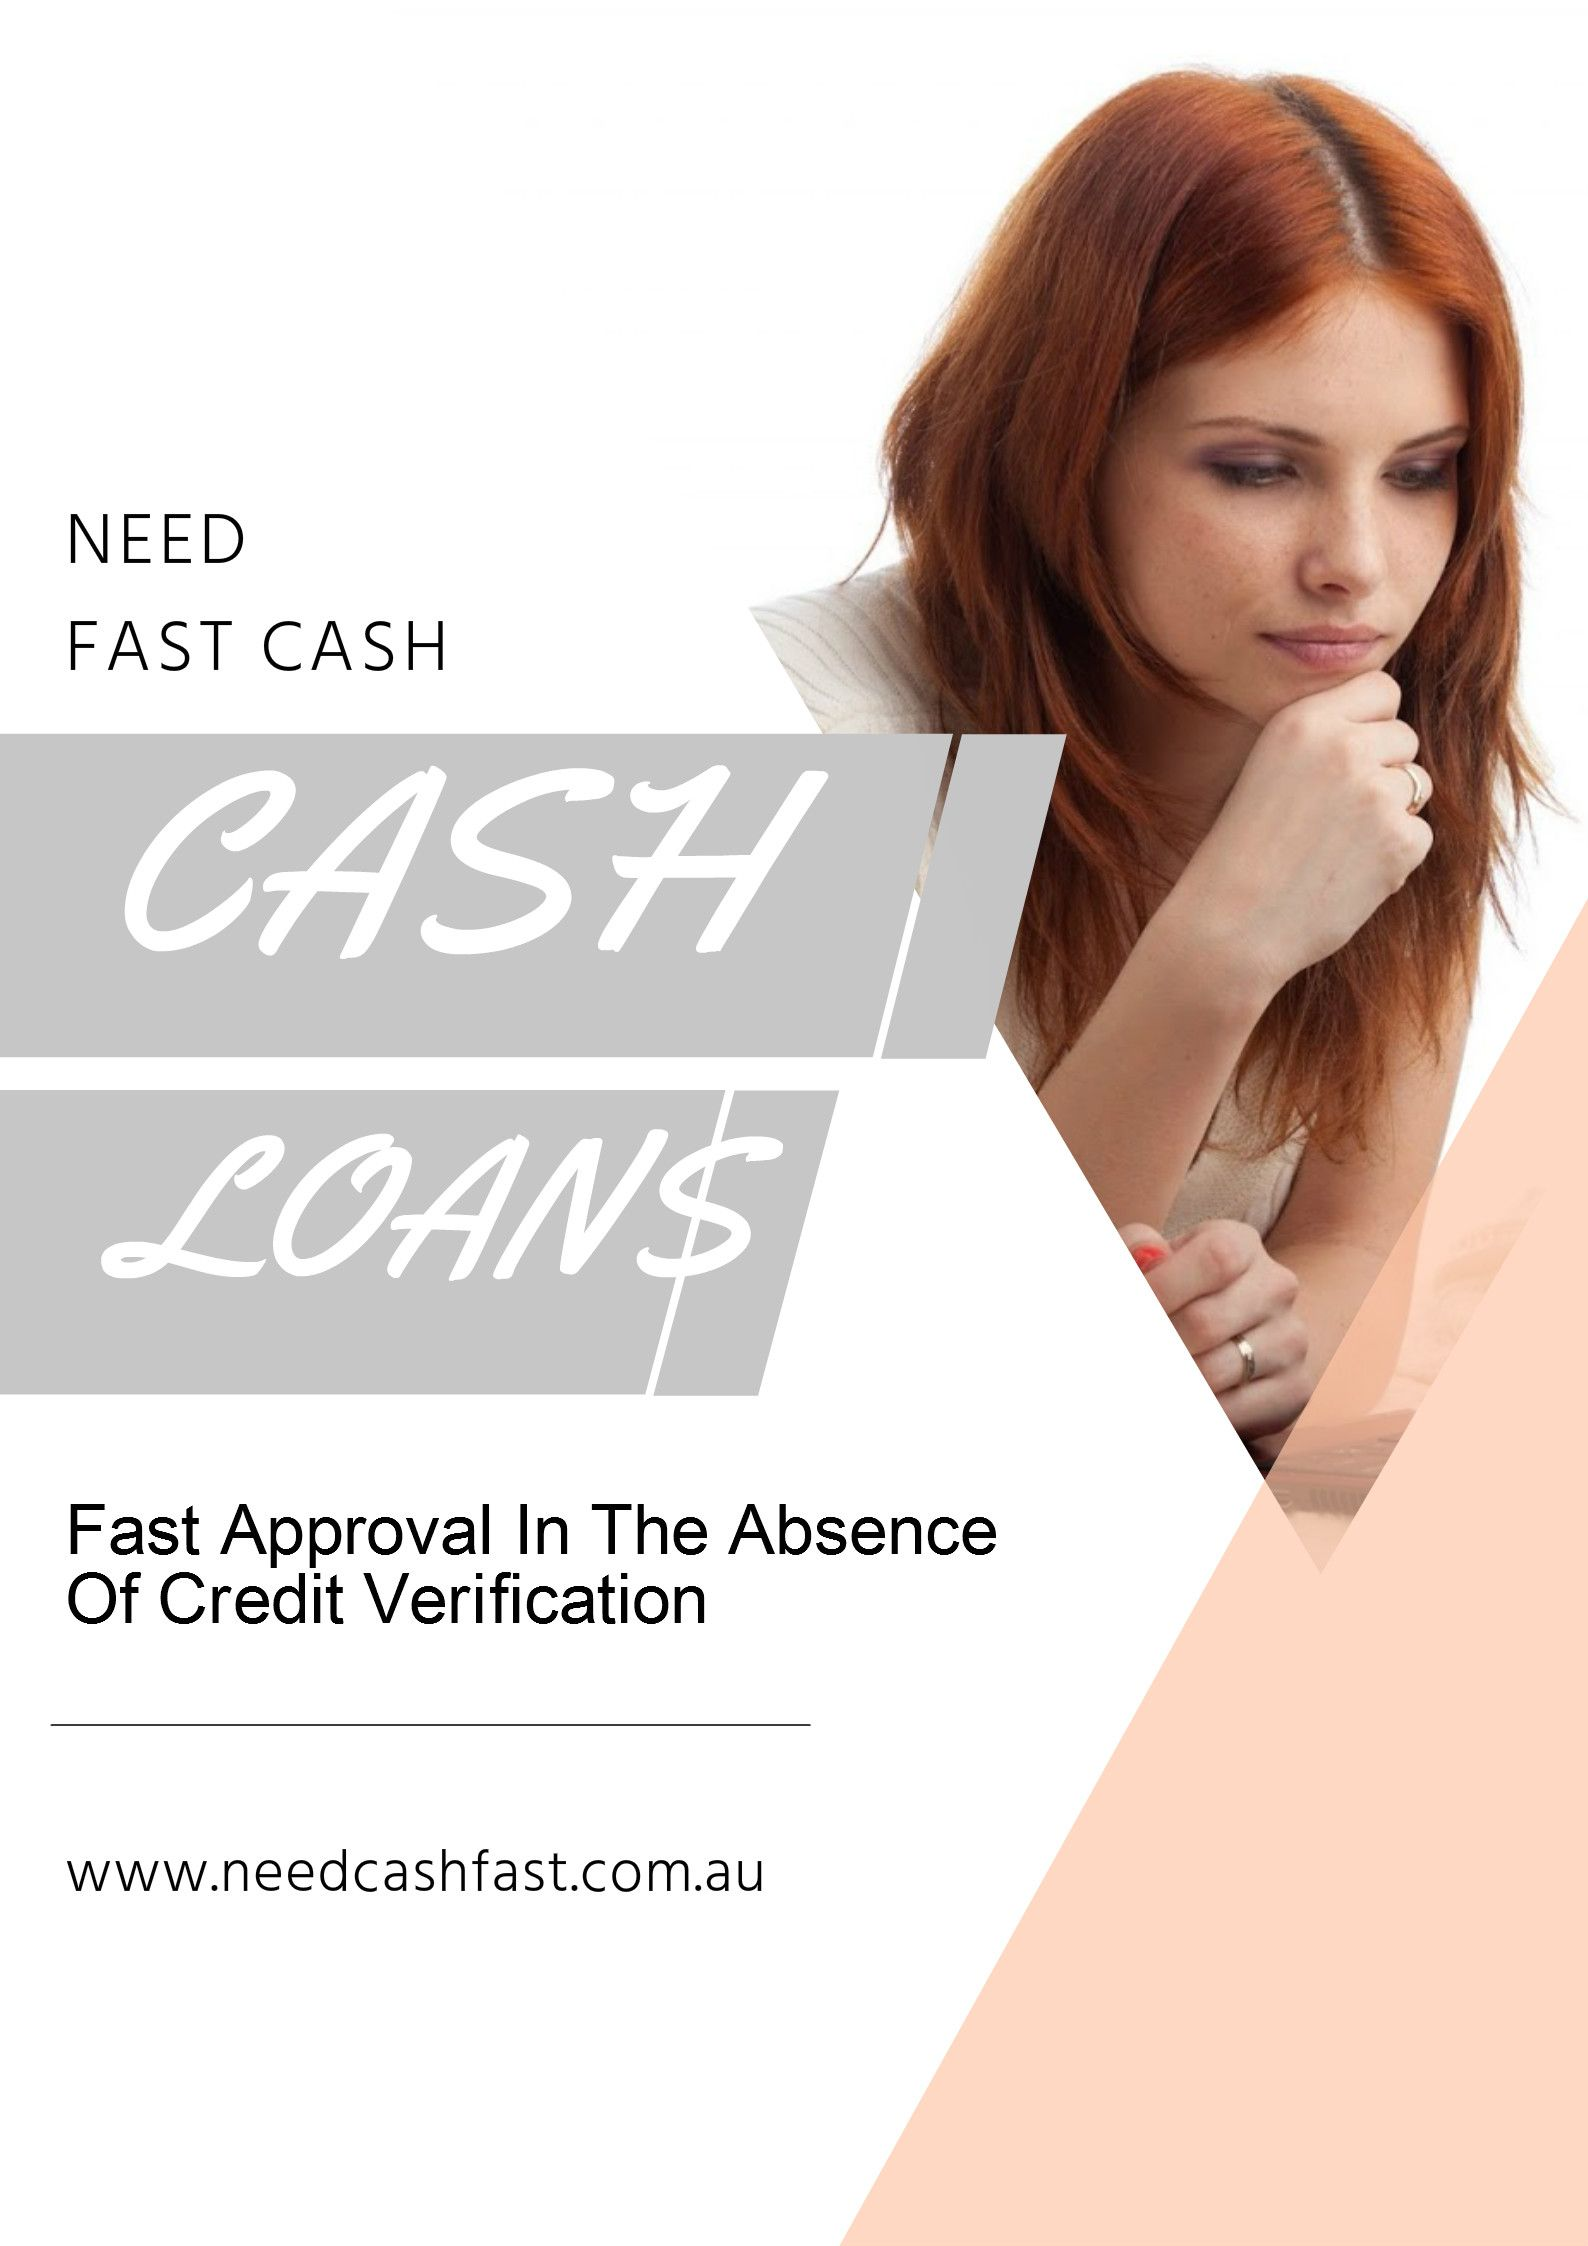 Online payday loans 2500 picture 3